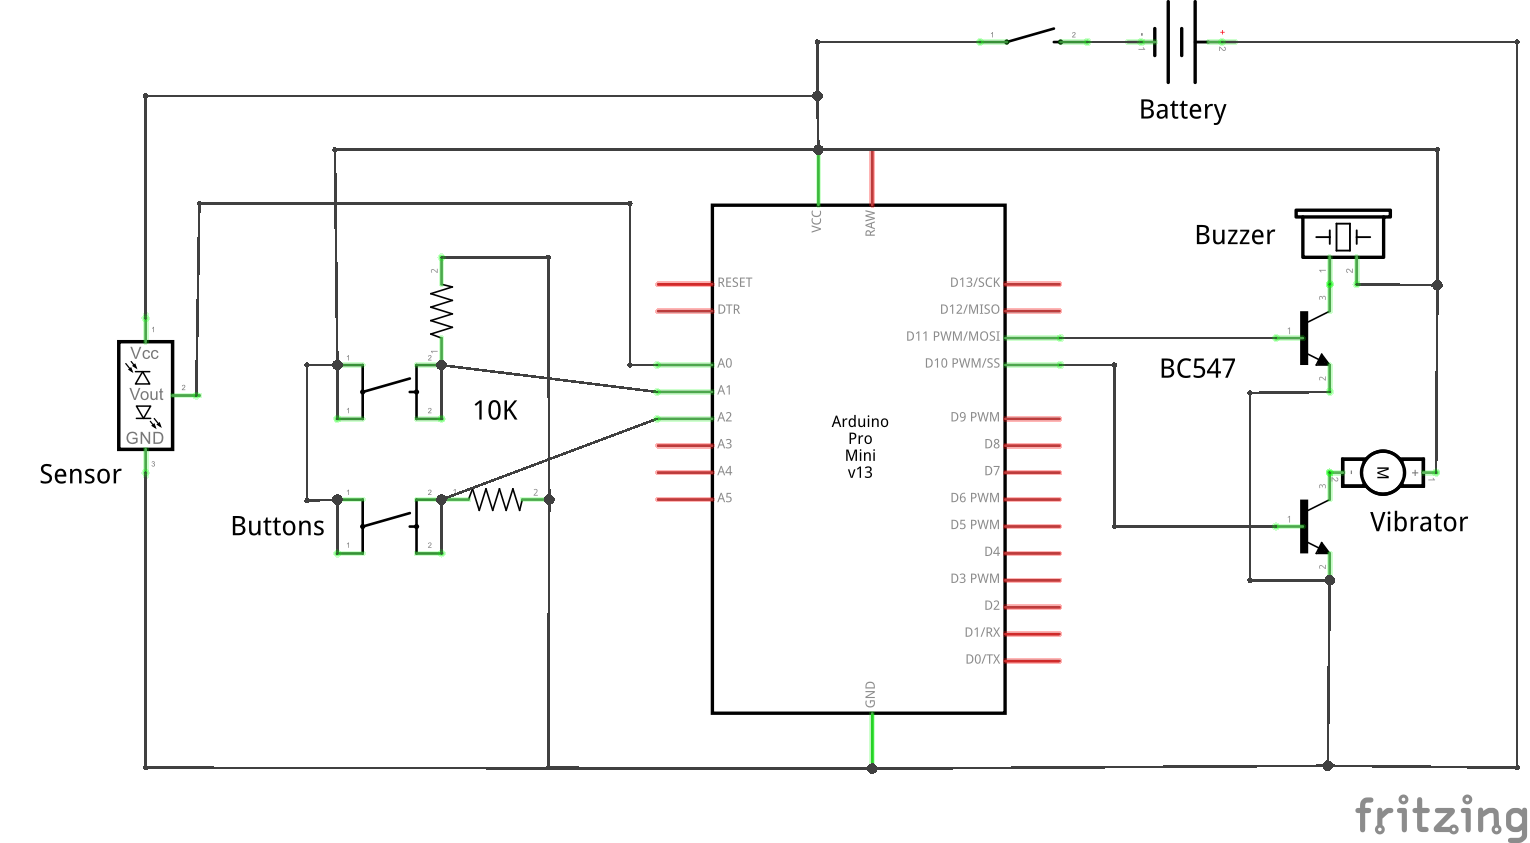 Vision A Torch For The Visually Impaired Ultrasonic Transmitter Switch Circuit Schematic Diagram Complete Project